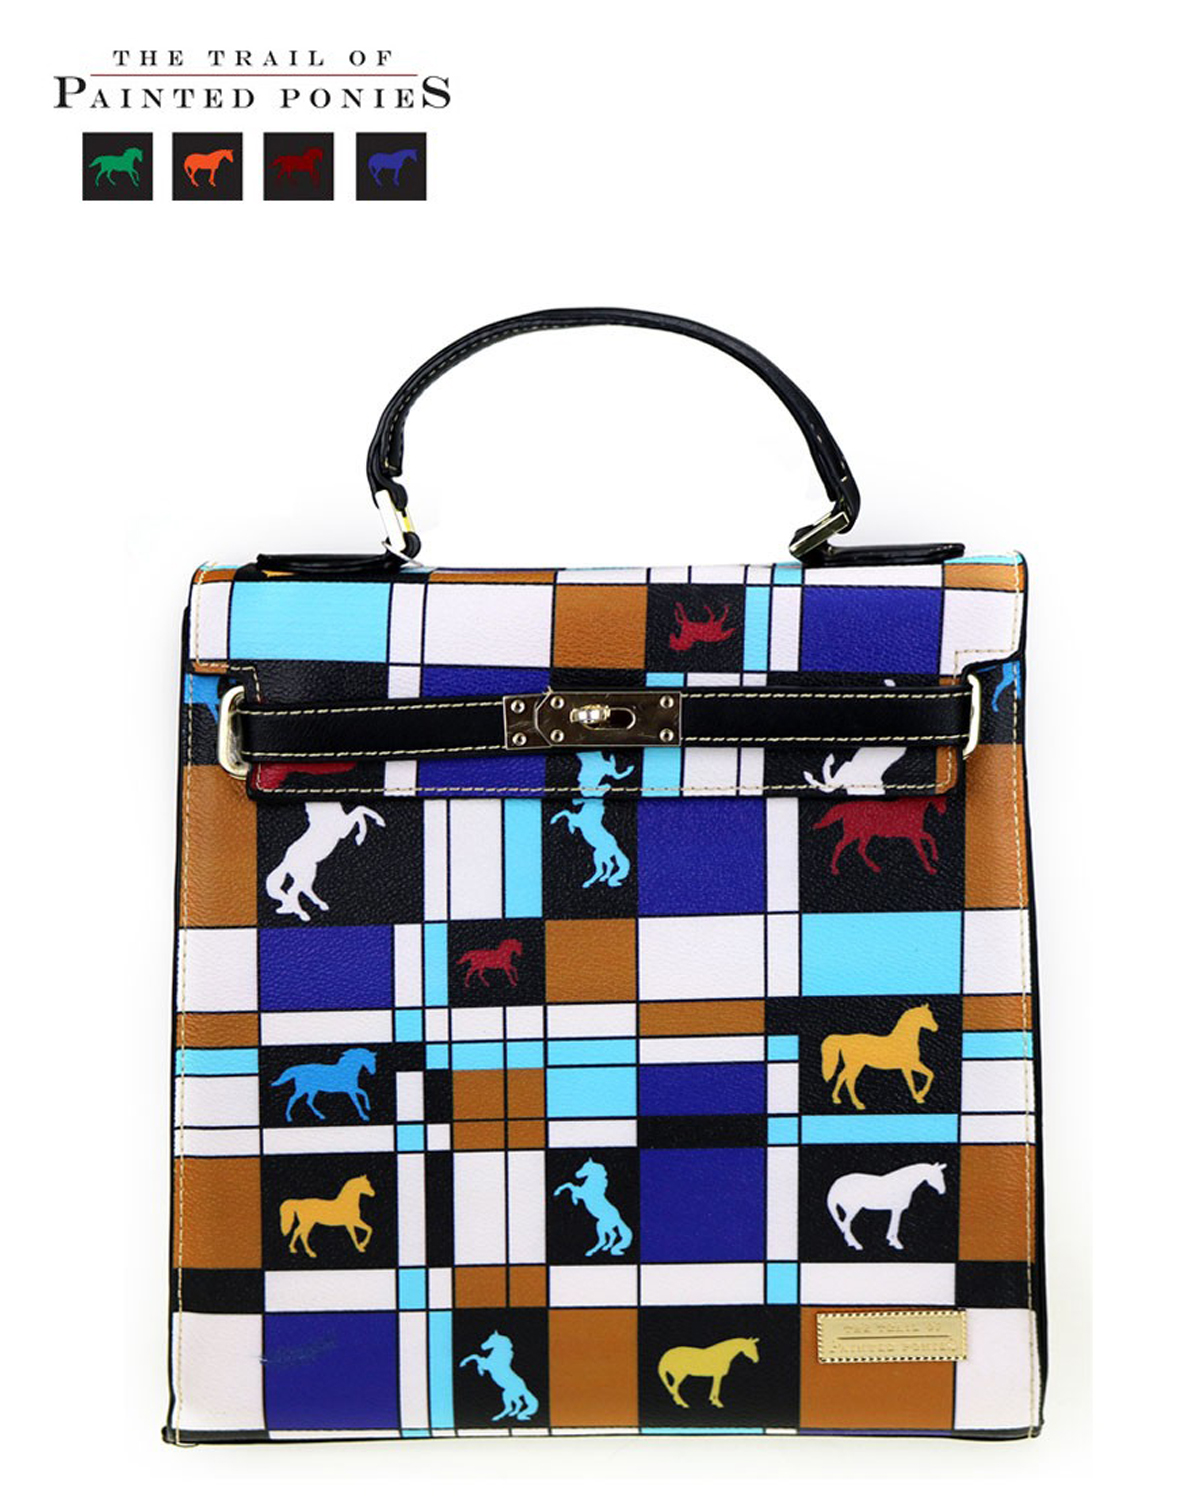 TPP039113(OW)-MW-wholesale-montana-west-backpack-trail-painted-ponies-logo-horse-pattern-multicolor-travel-satchel-(0).jpg